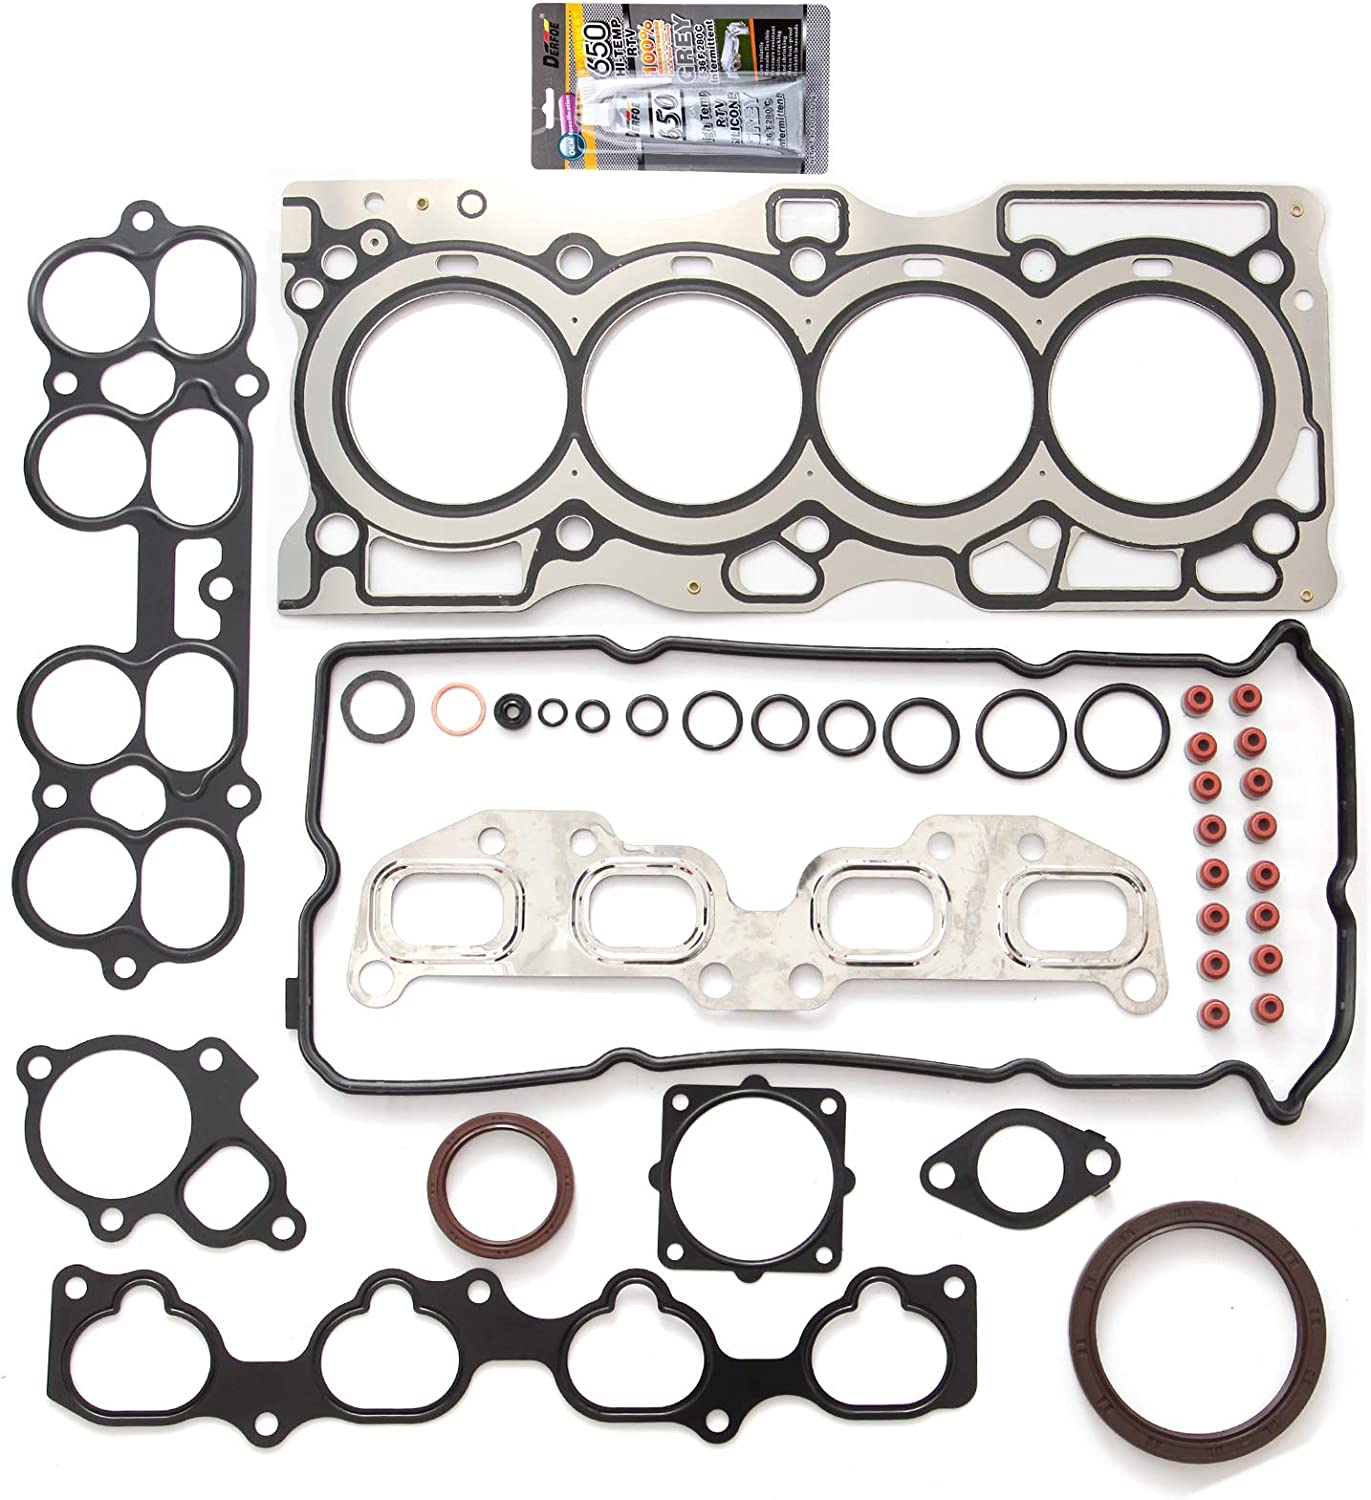 Cylinder Head Gasket compatible with Nissan Altima 02-06 Multi-Layered Steel QR25DE GAS FI DOHC